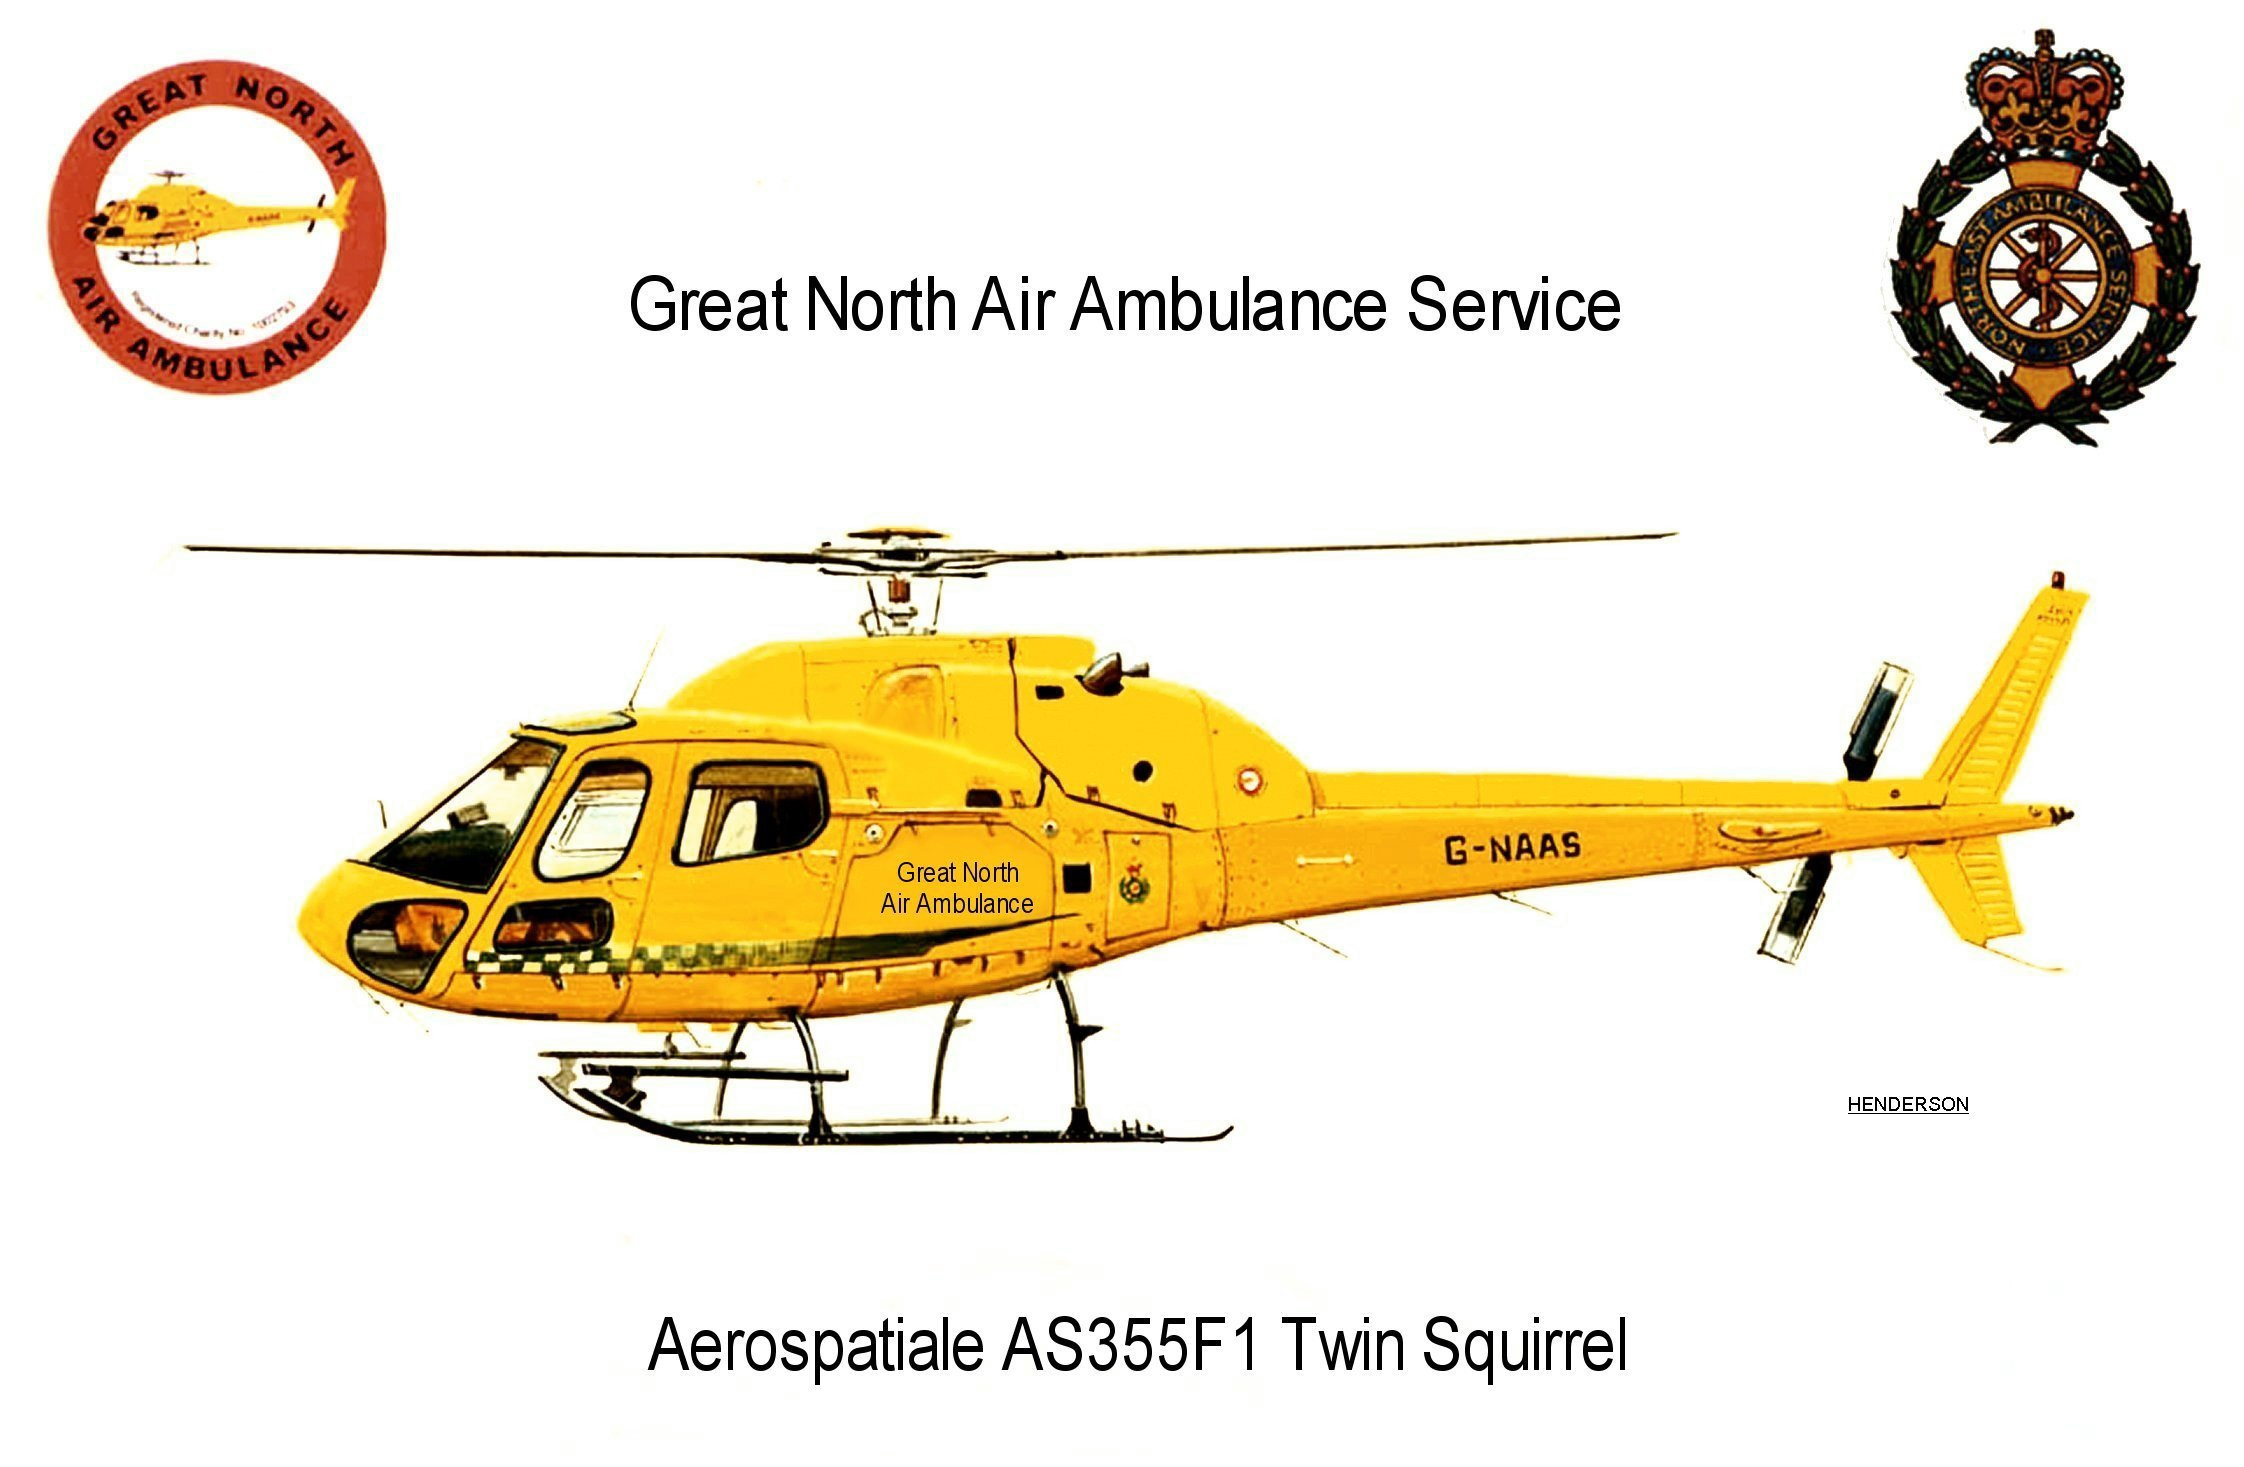 A drawing of G-NAAS helicopter